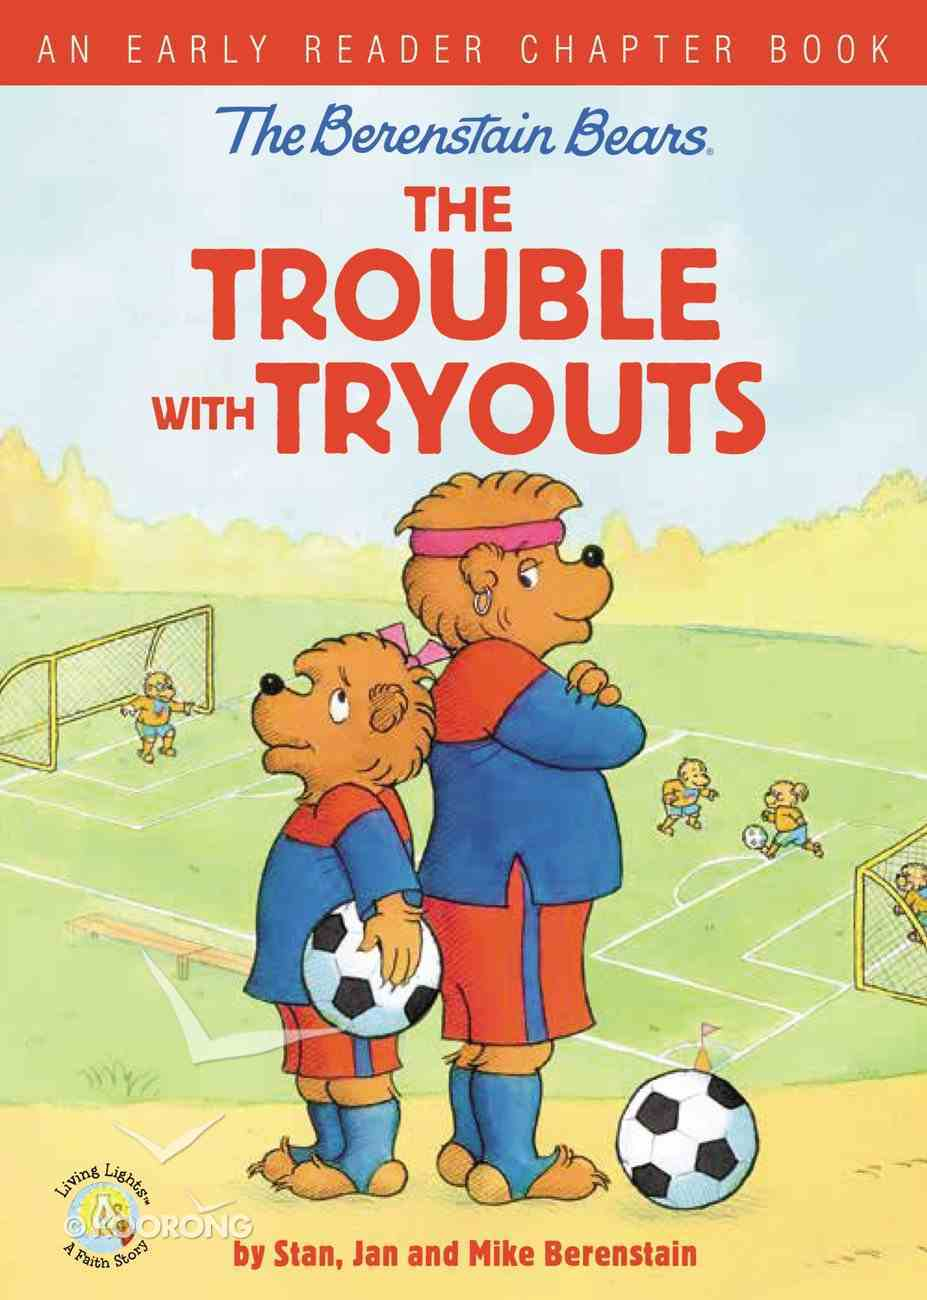 The Berenstain Bears the Trouble With Tryouts (An Early Reader Chapter Book) (The Berenstain Bears Series) Hardback